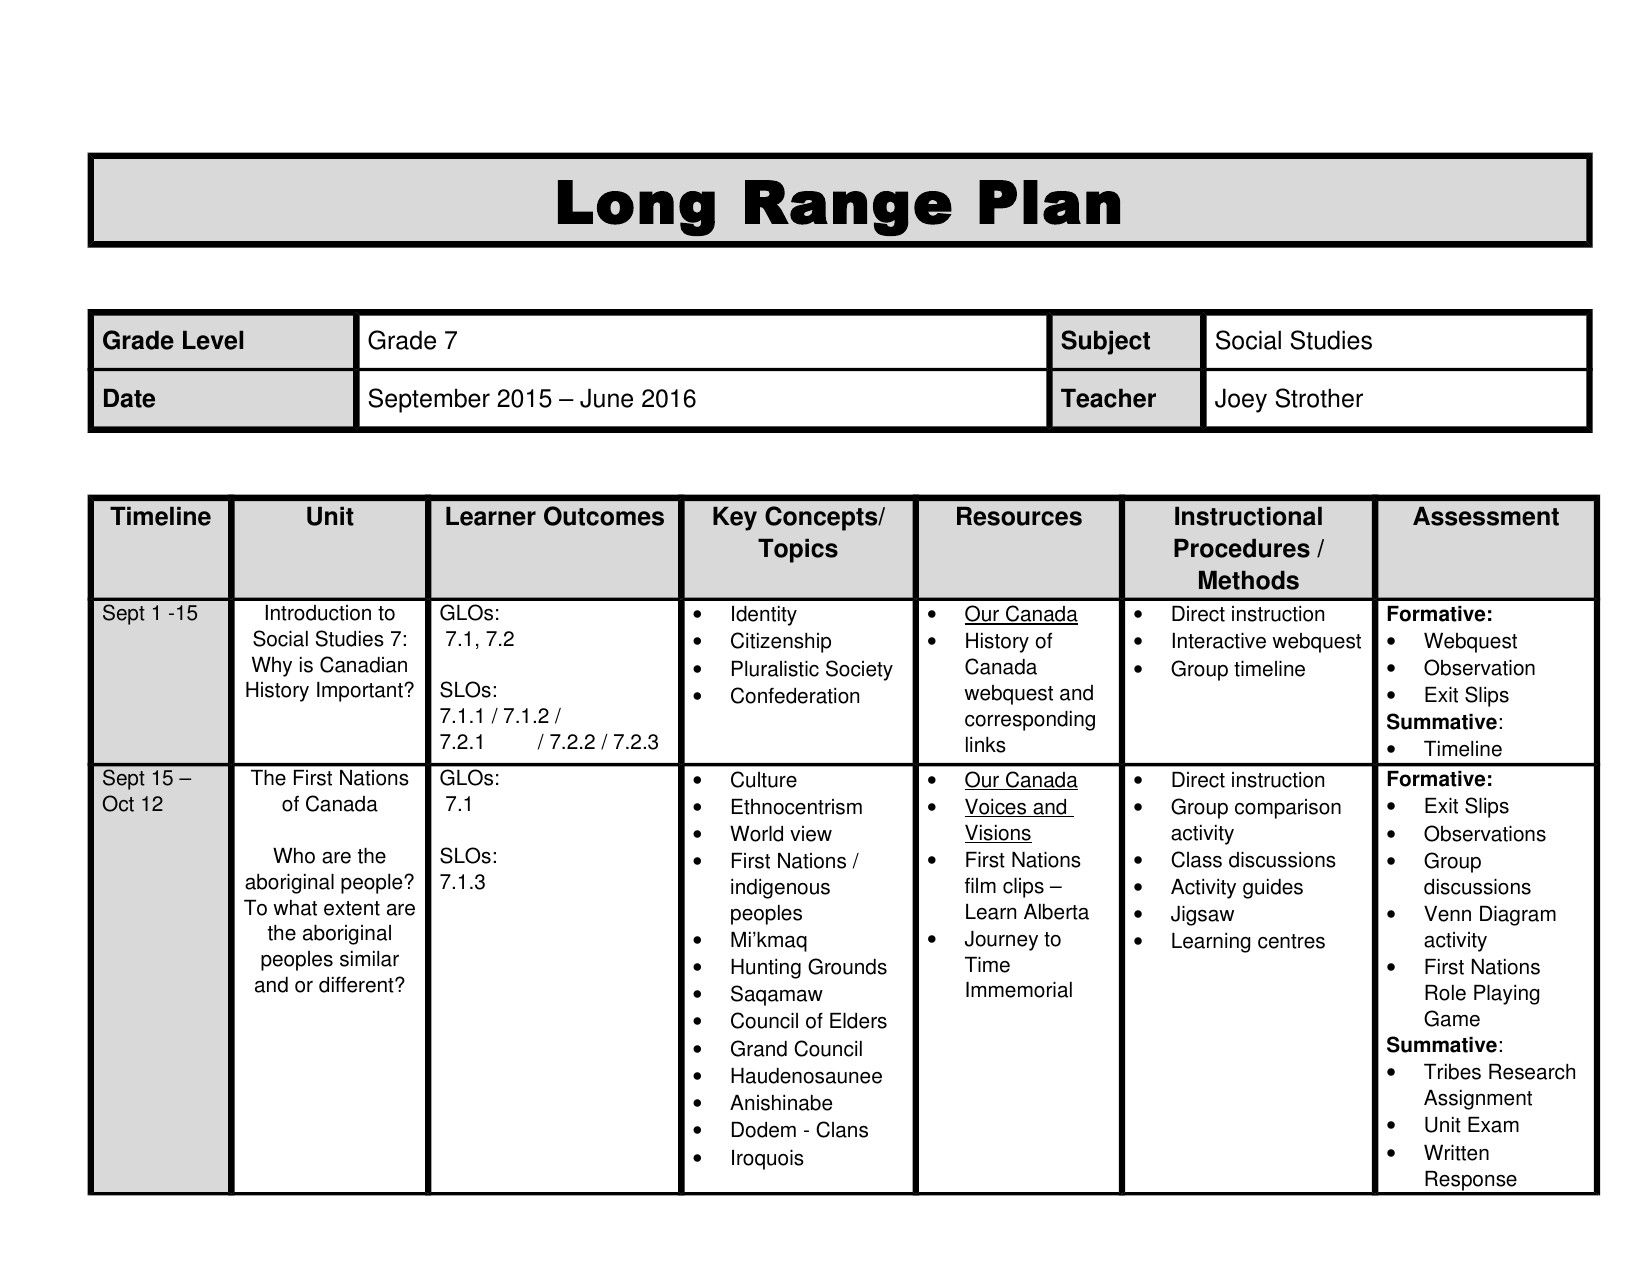 Long Range Lesson Plans Template Inspirational social Stu